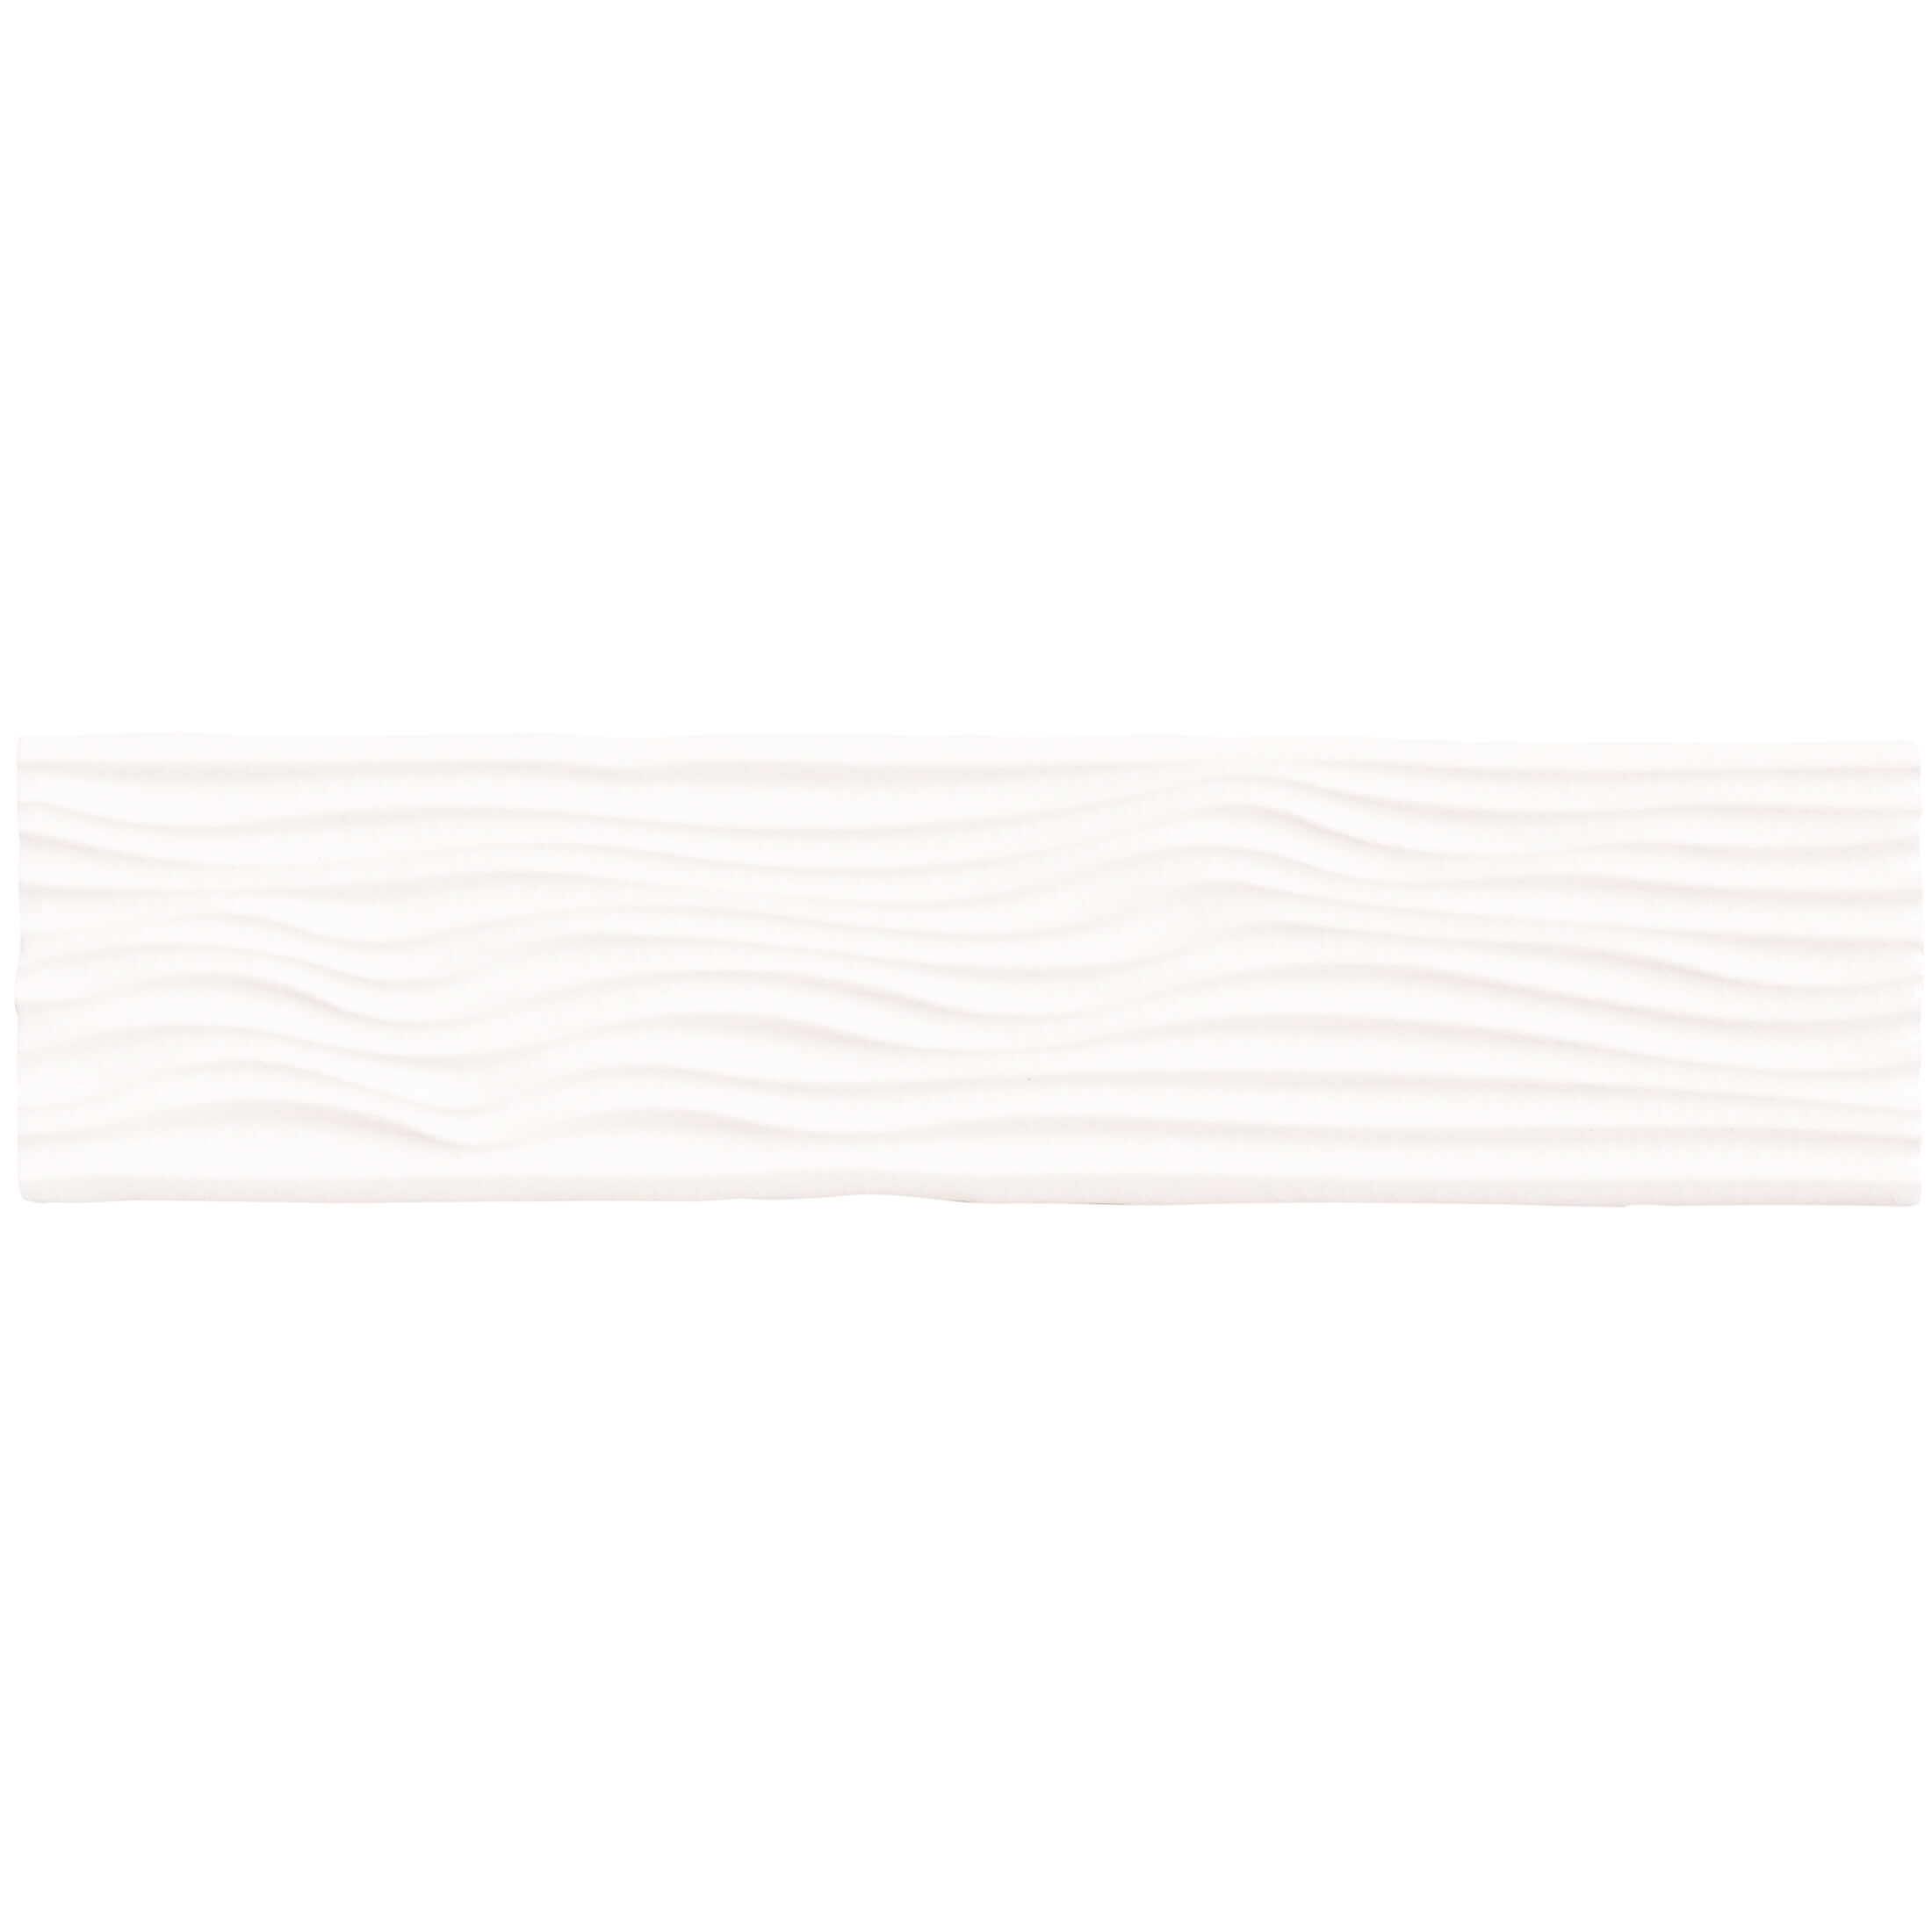 ADEH1006 - LISO WAVES - 7.5 cm X 30 cm